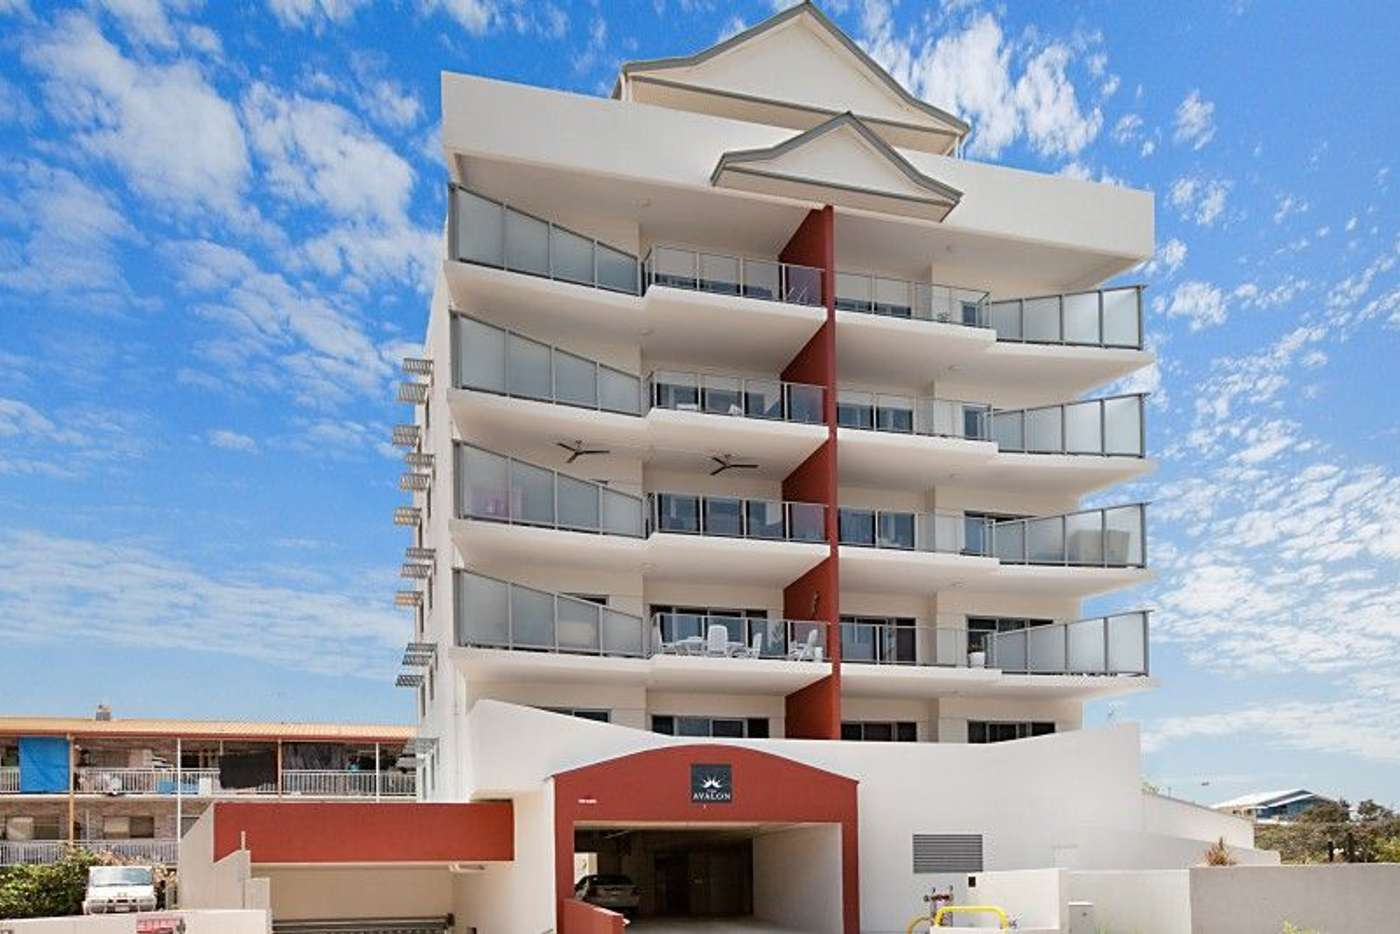 Main view of Homely apartment listing, 2/6 Warrego Court, Larrakeyah NT 820